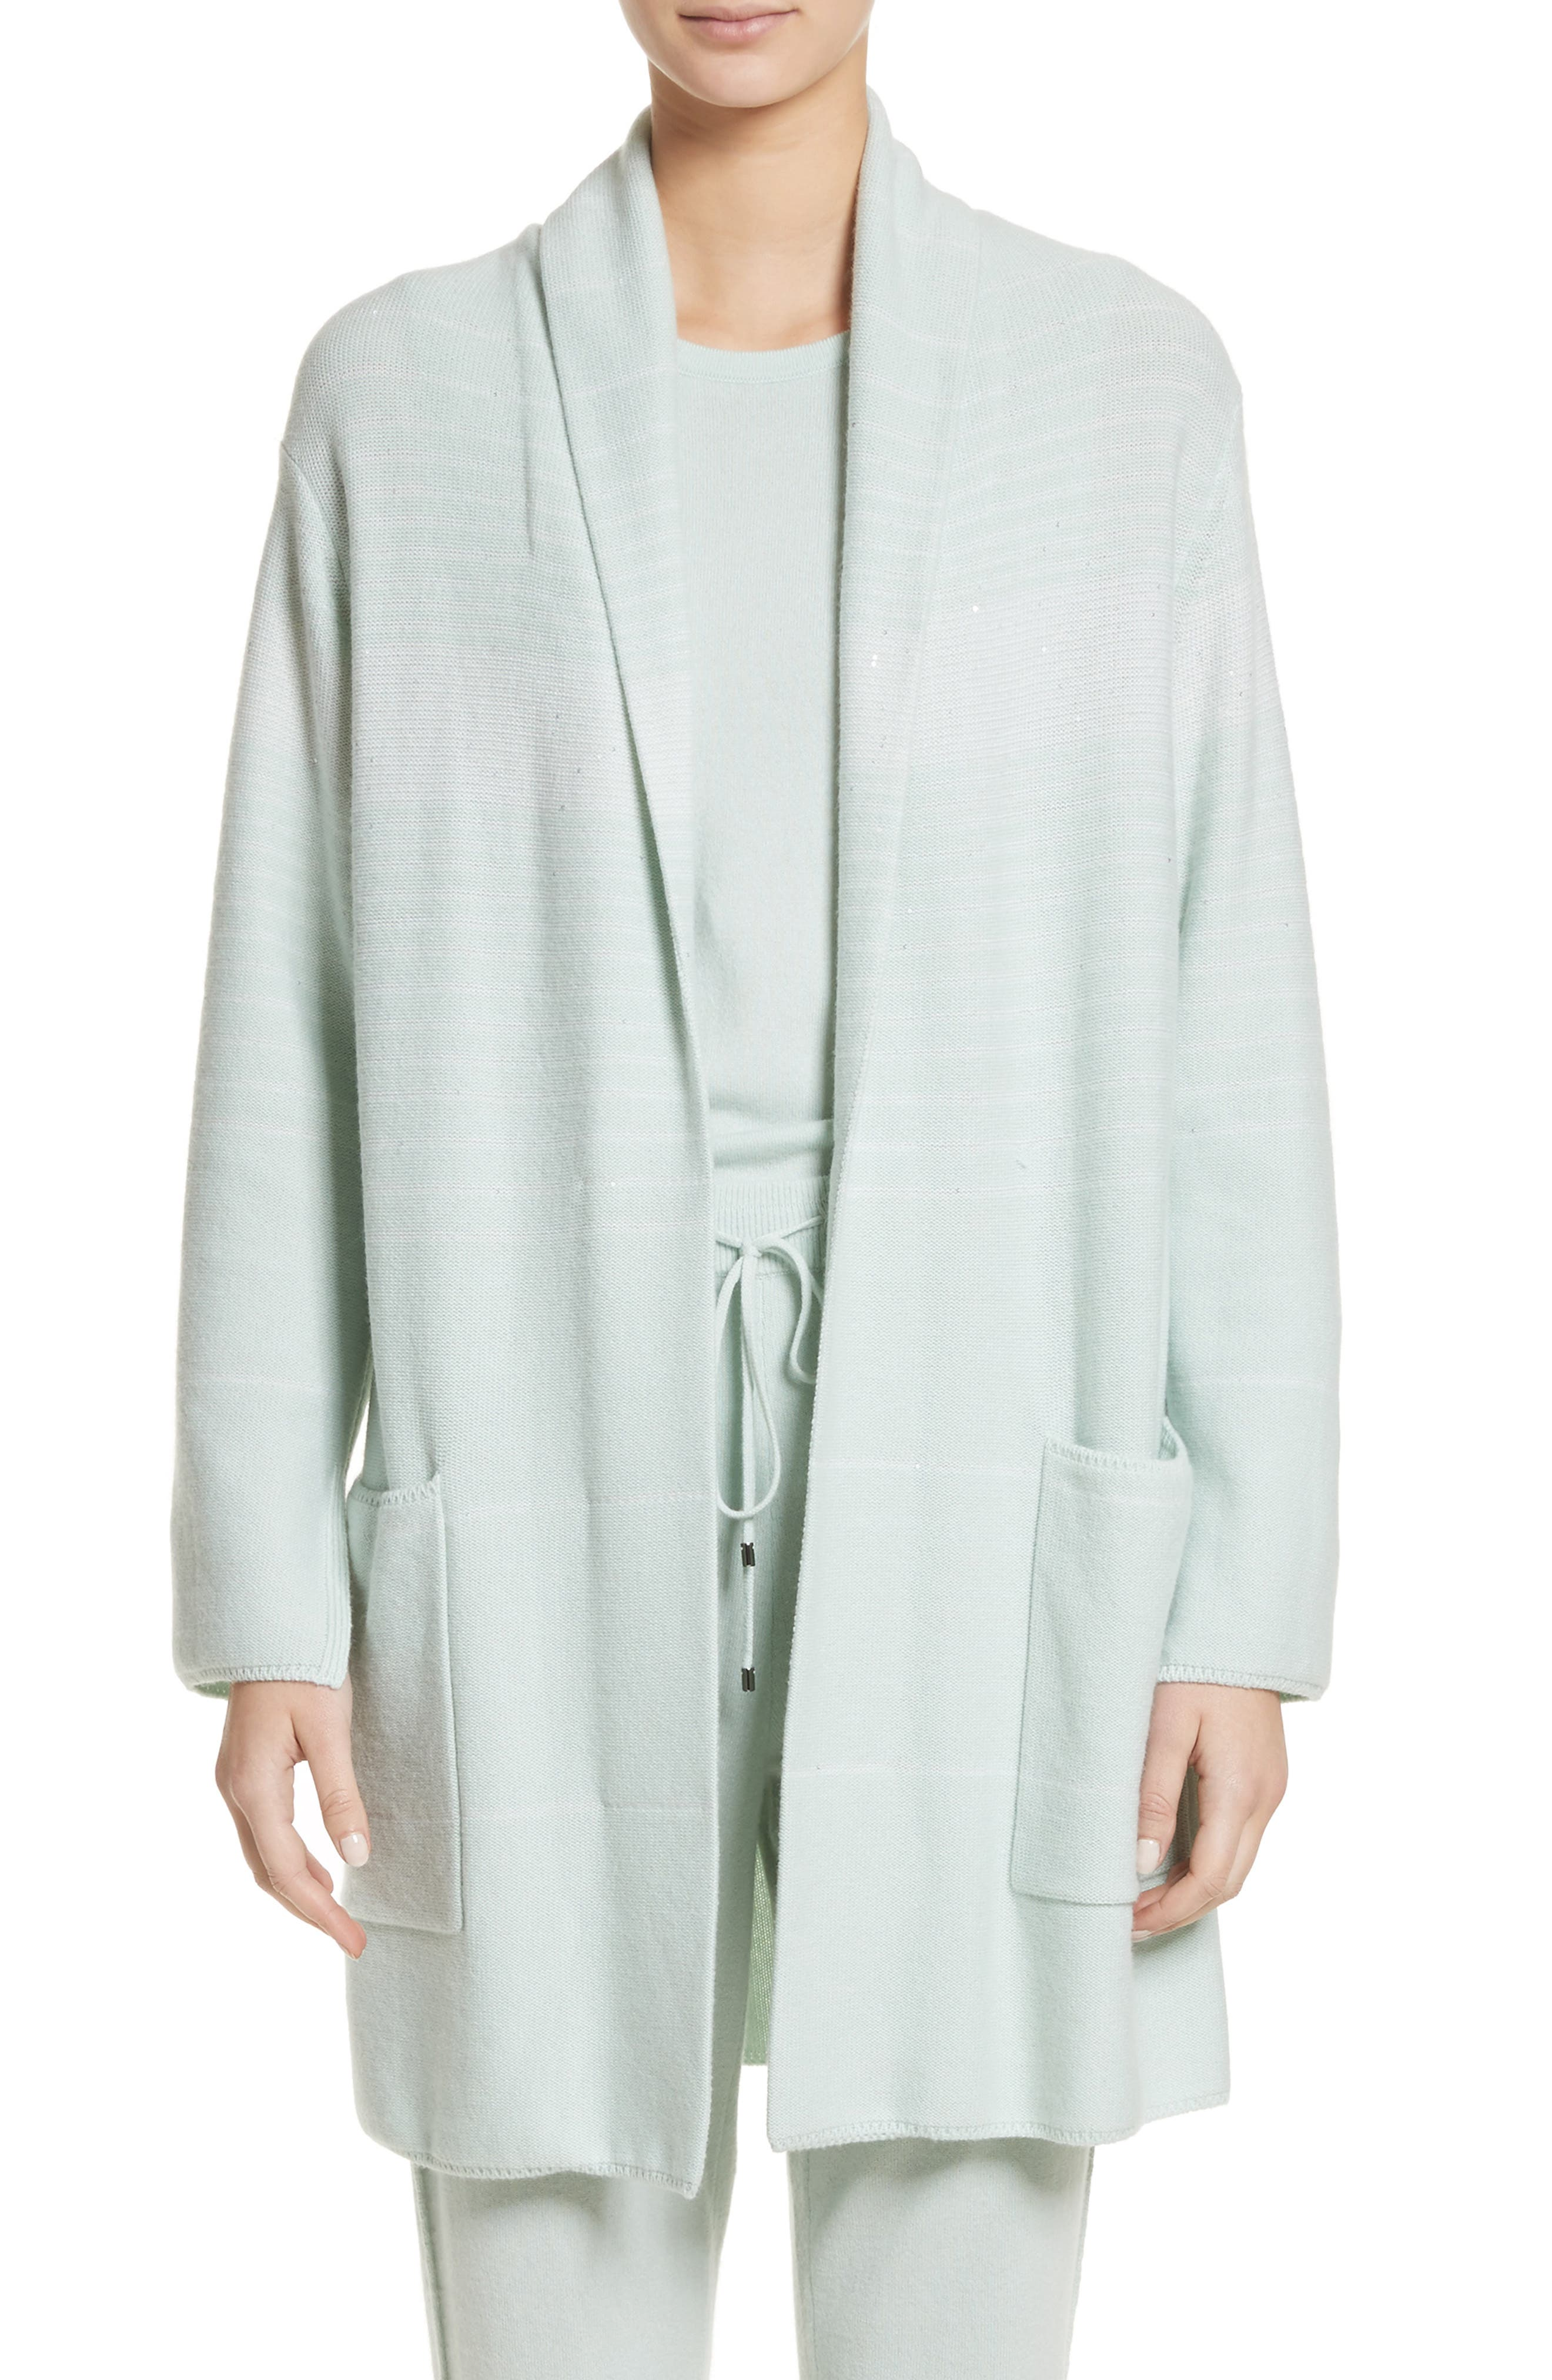 Alternate Image 1 Selected - St. John Collection Sequin Cashmere & Silk Cardigan